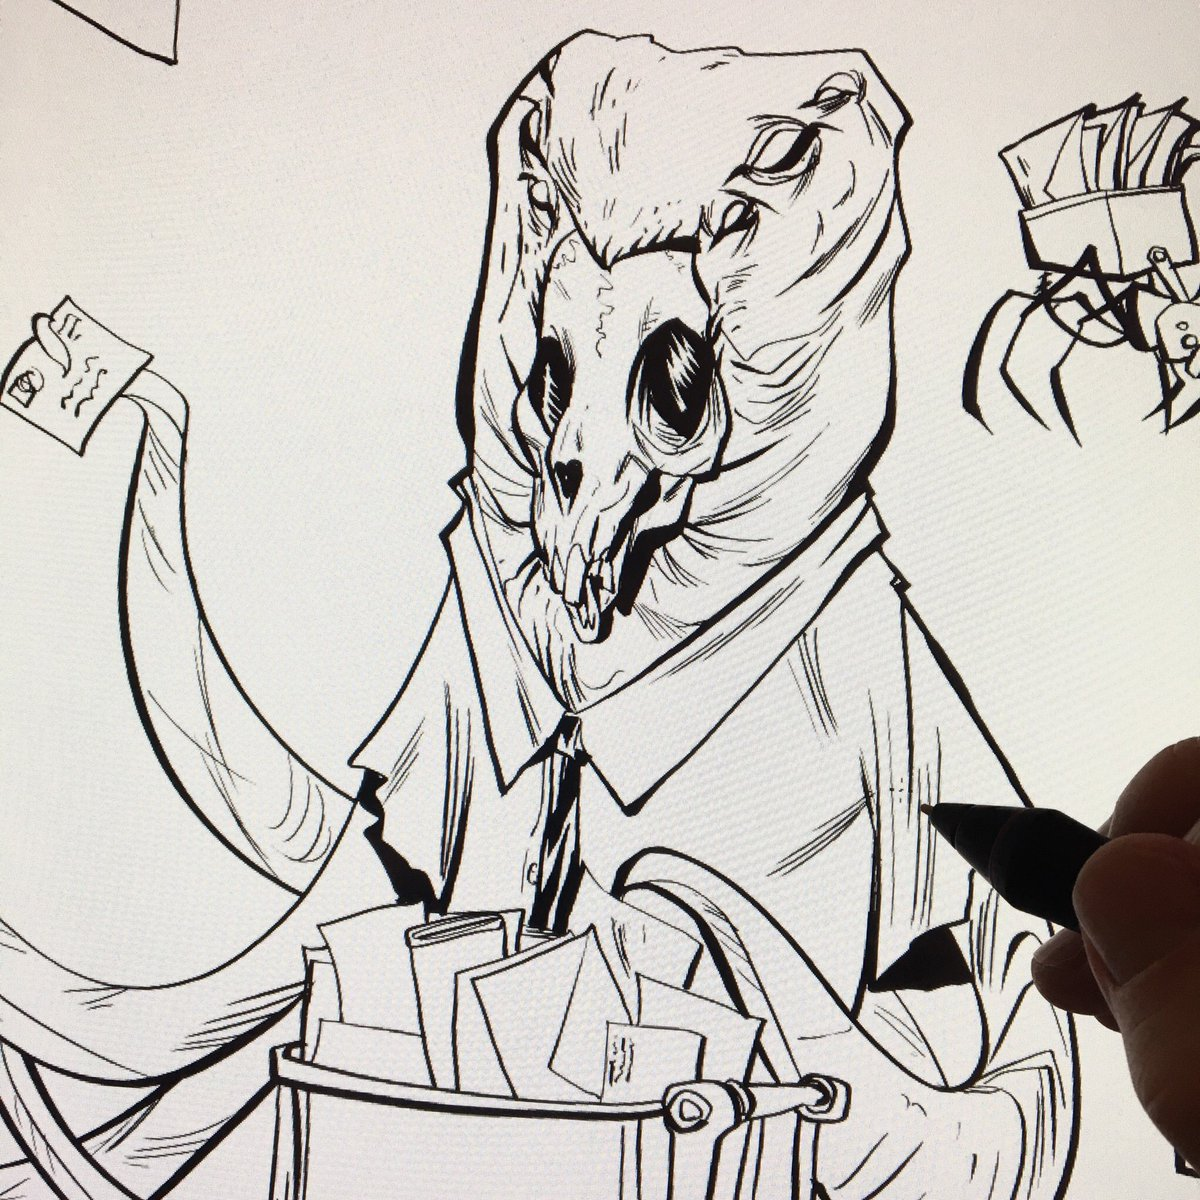 Adam Archer On Twitter Drawing A Monster Who Works At The Post